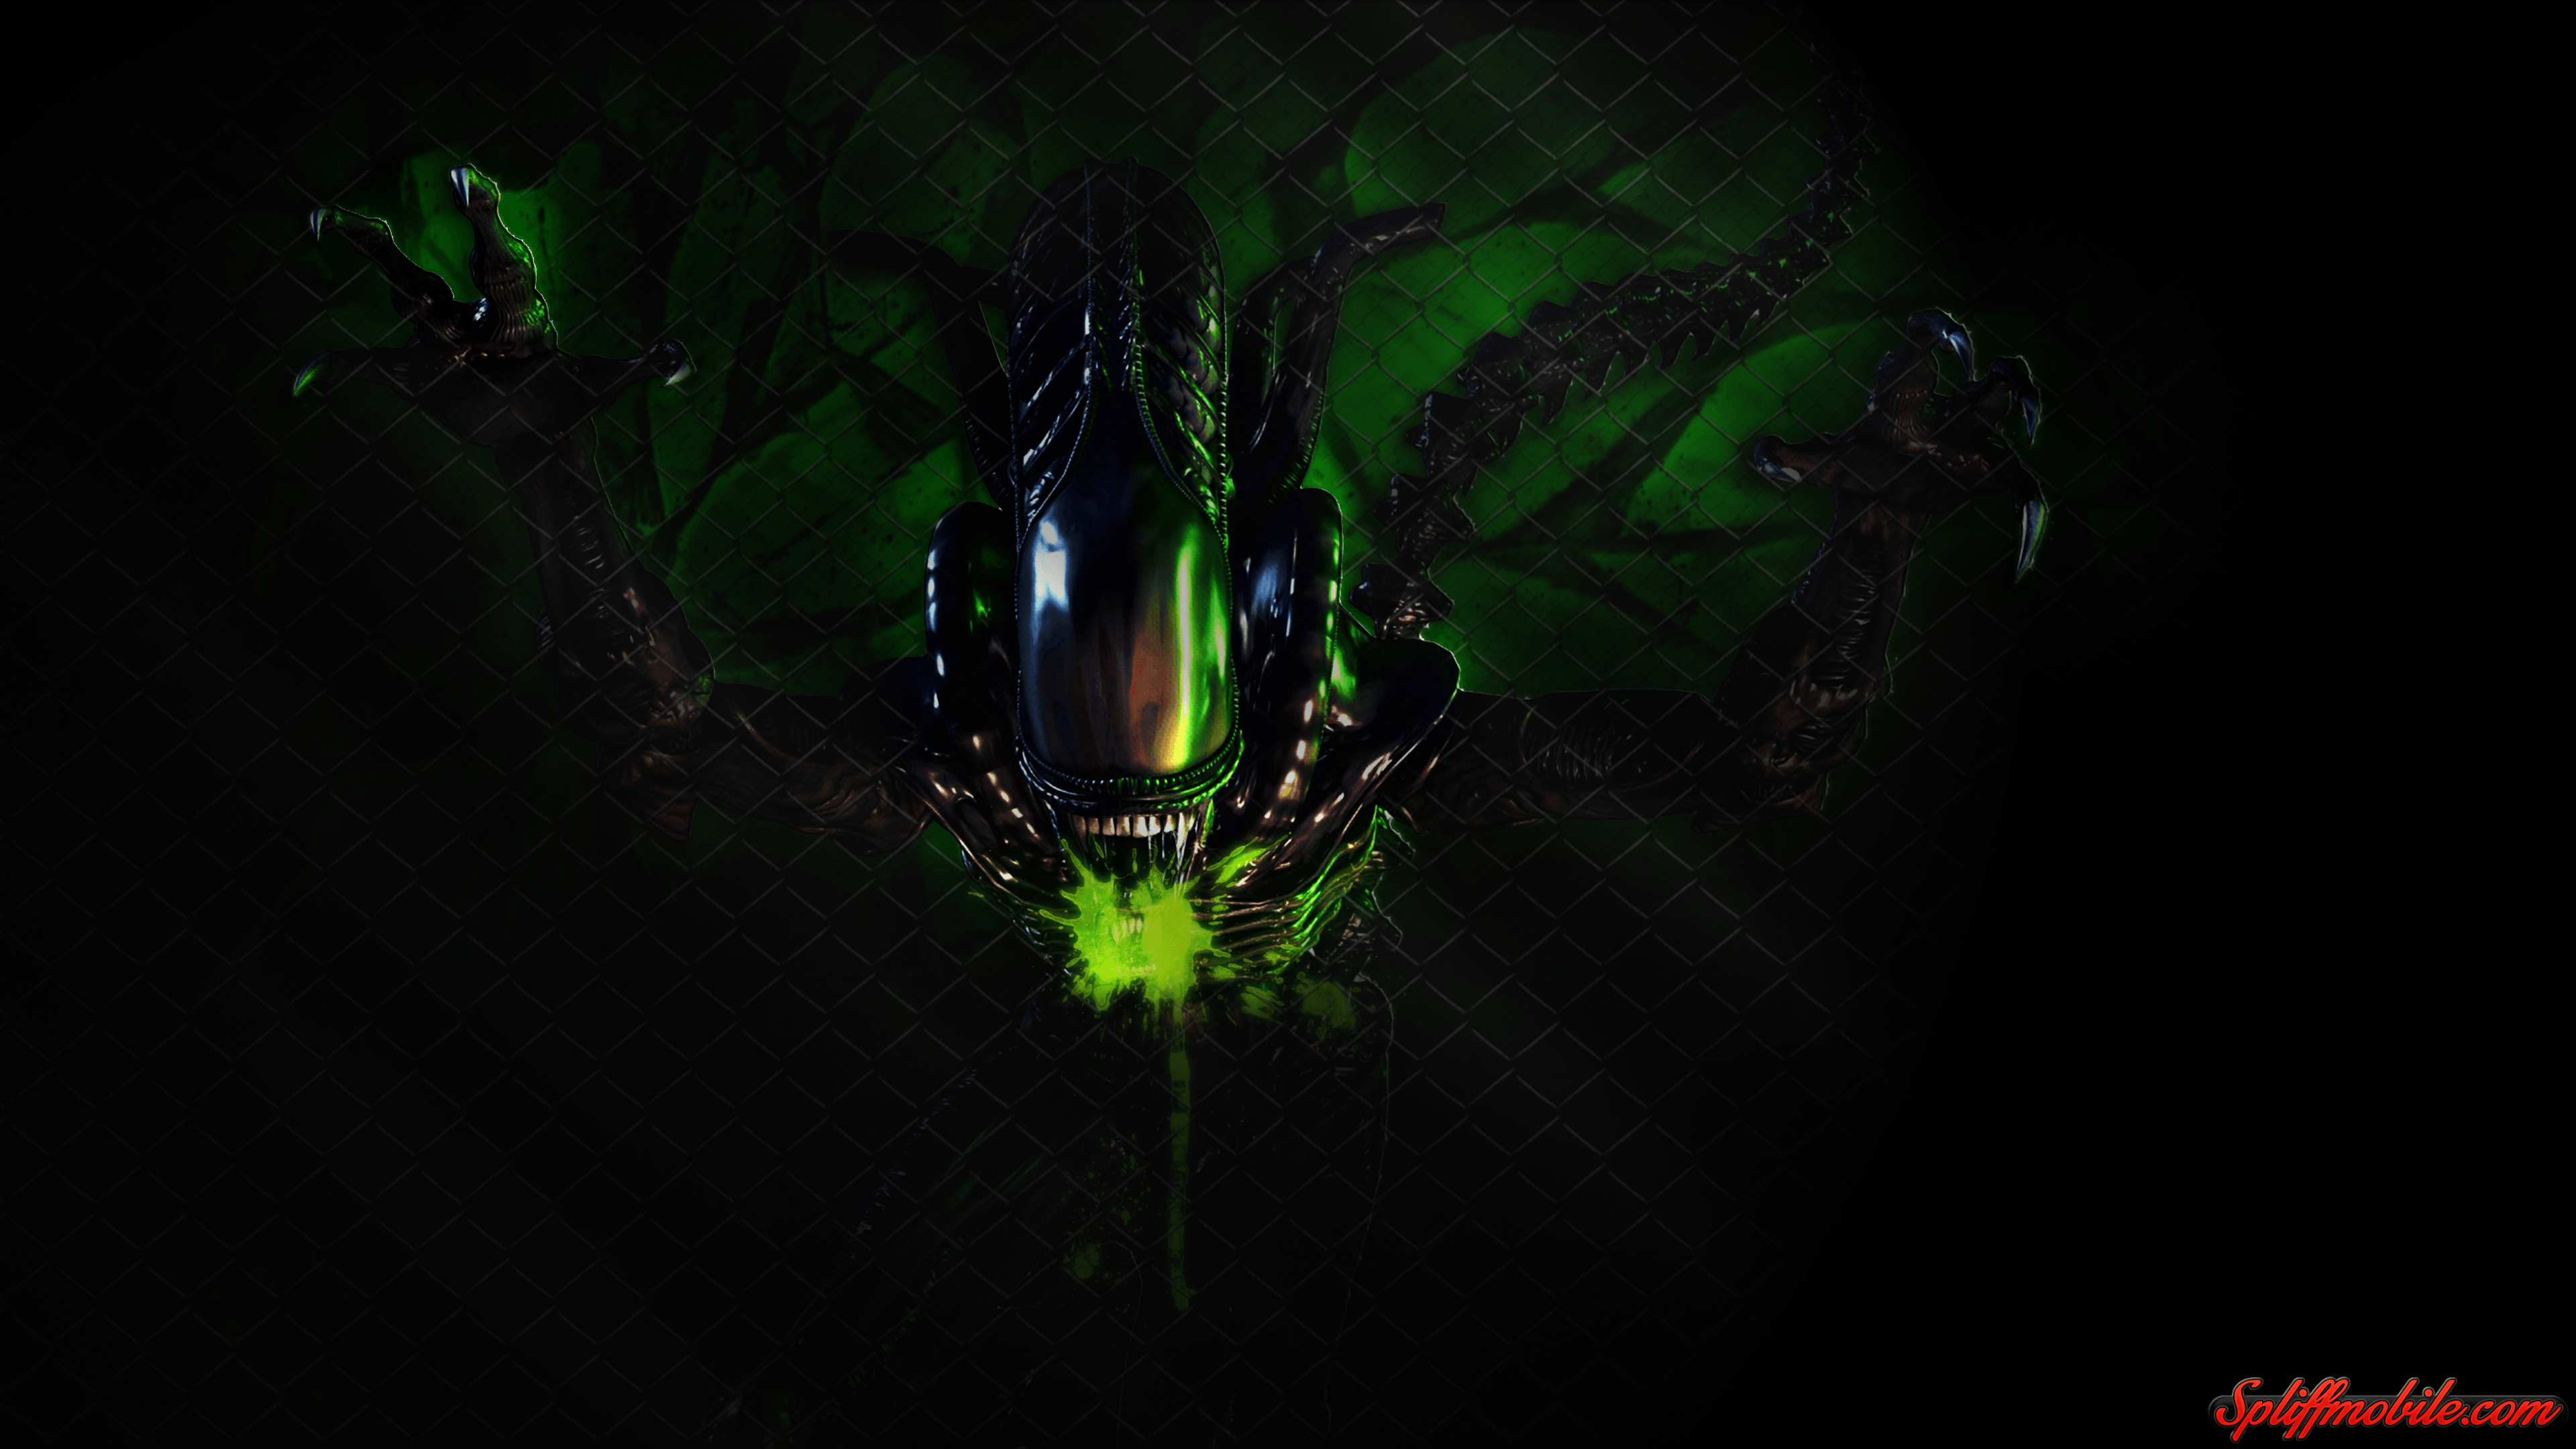 3840x2160 HD Alien Wallpaper